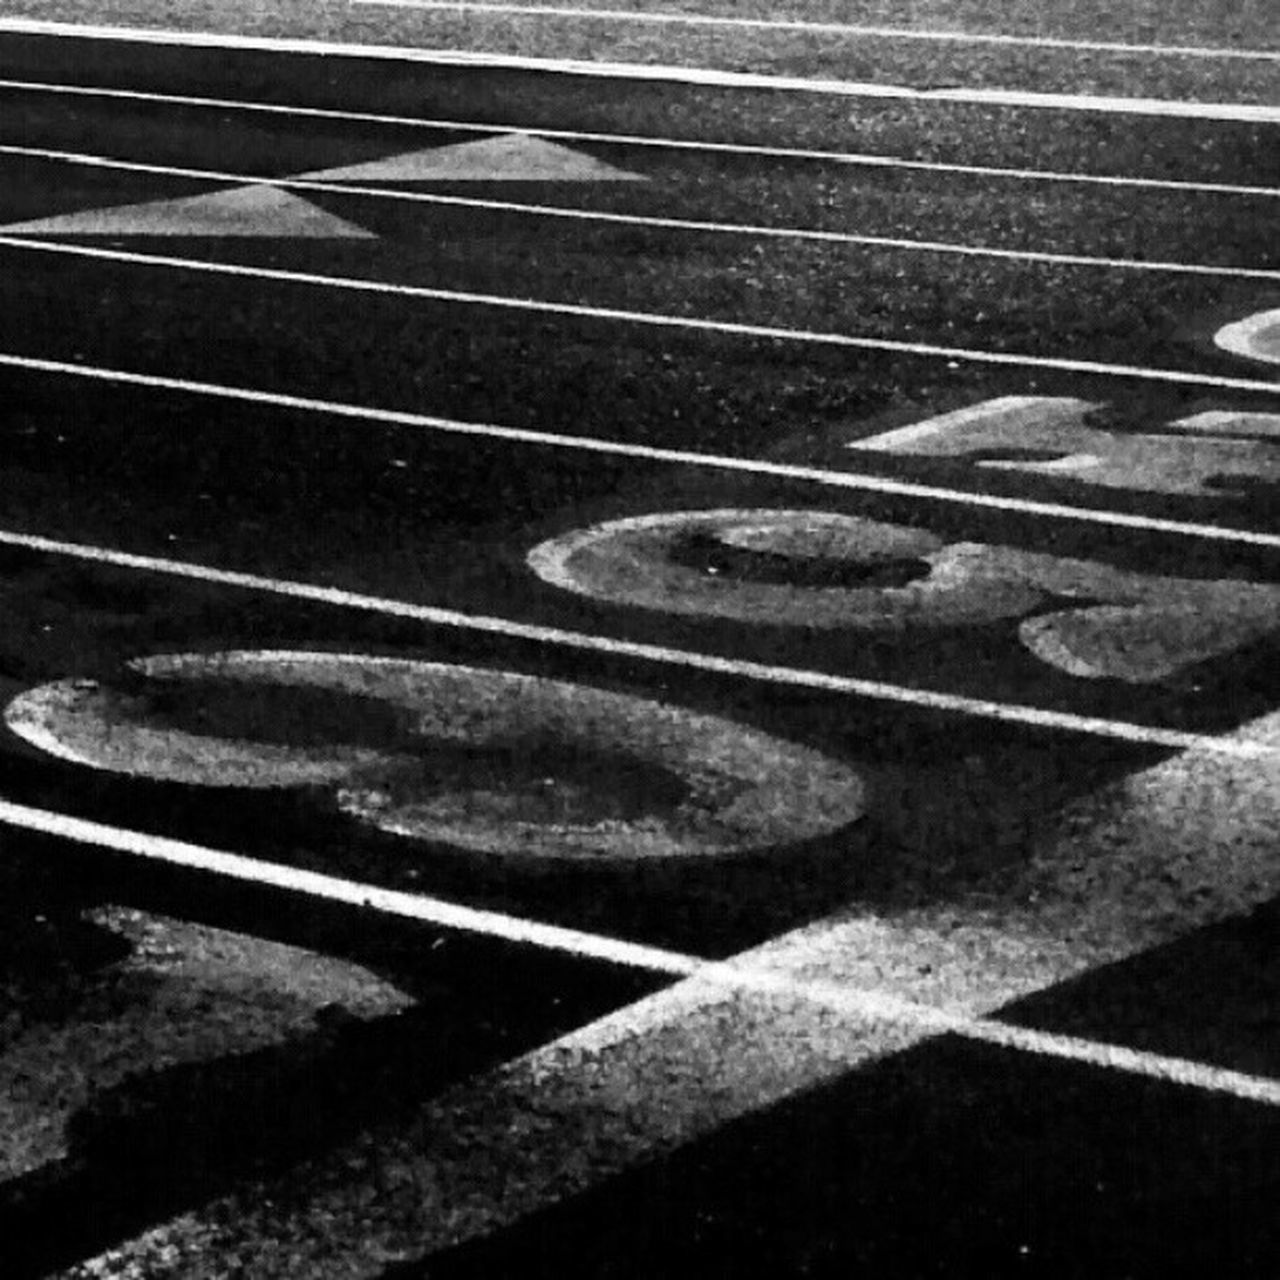 sport, no people, exercising, competition, day, running track, sports track, strength, outdoors, full frame, shadow, sports venue, close-up, competitive sport, healthy lifestyle, court, stadium, guitar, racket sport, tennis